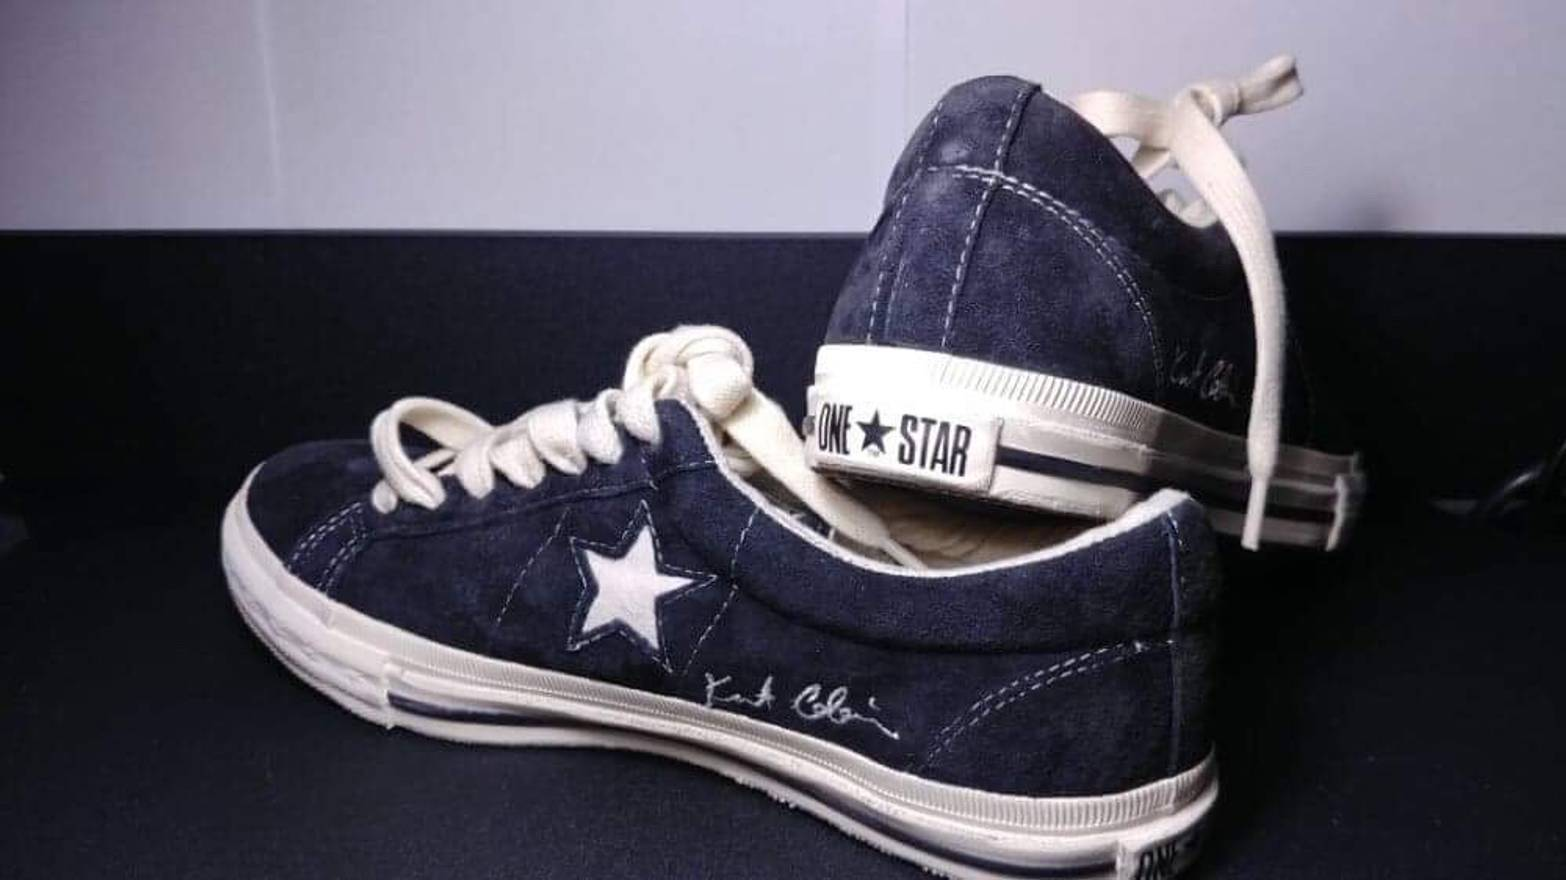 9cd765584b55 ... cheap converse converse one star x kurt cobain size us 7 eu 40 d272f  a25f2